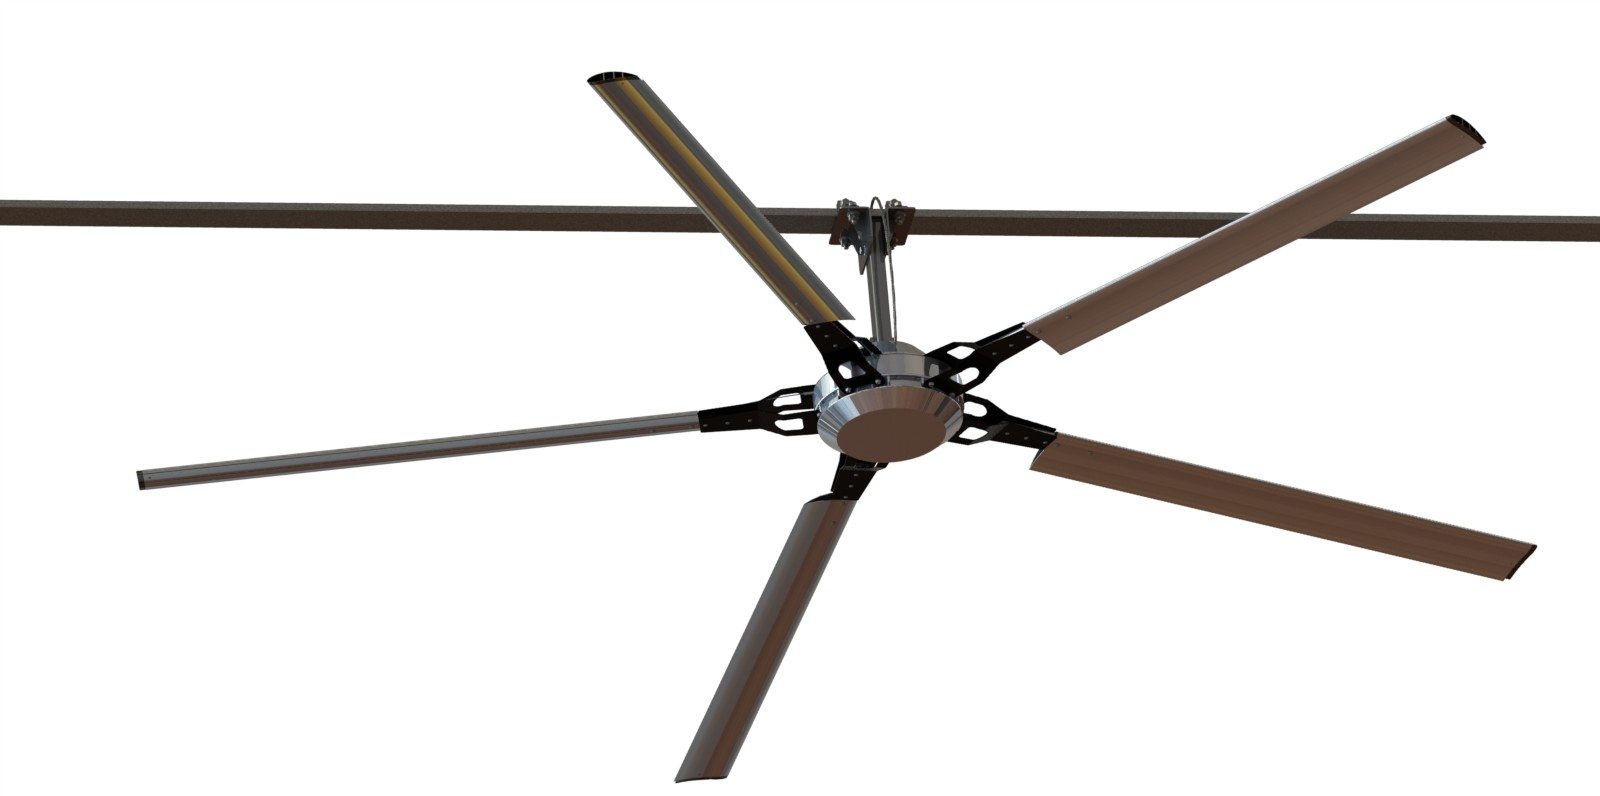 Epoch HVLS 14-ft Fan